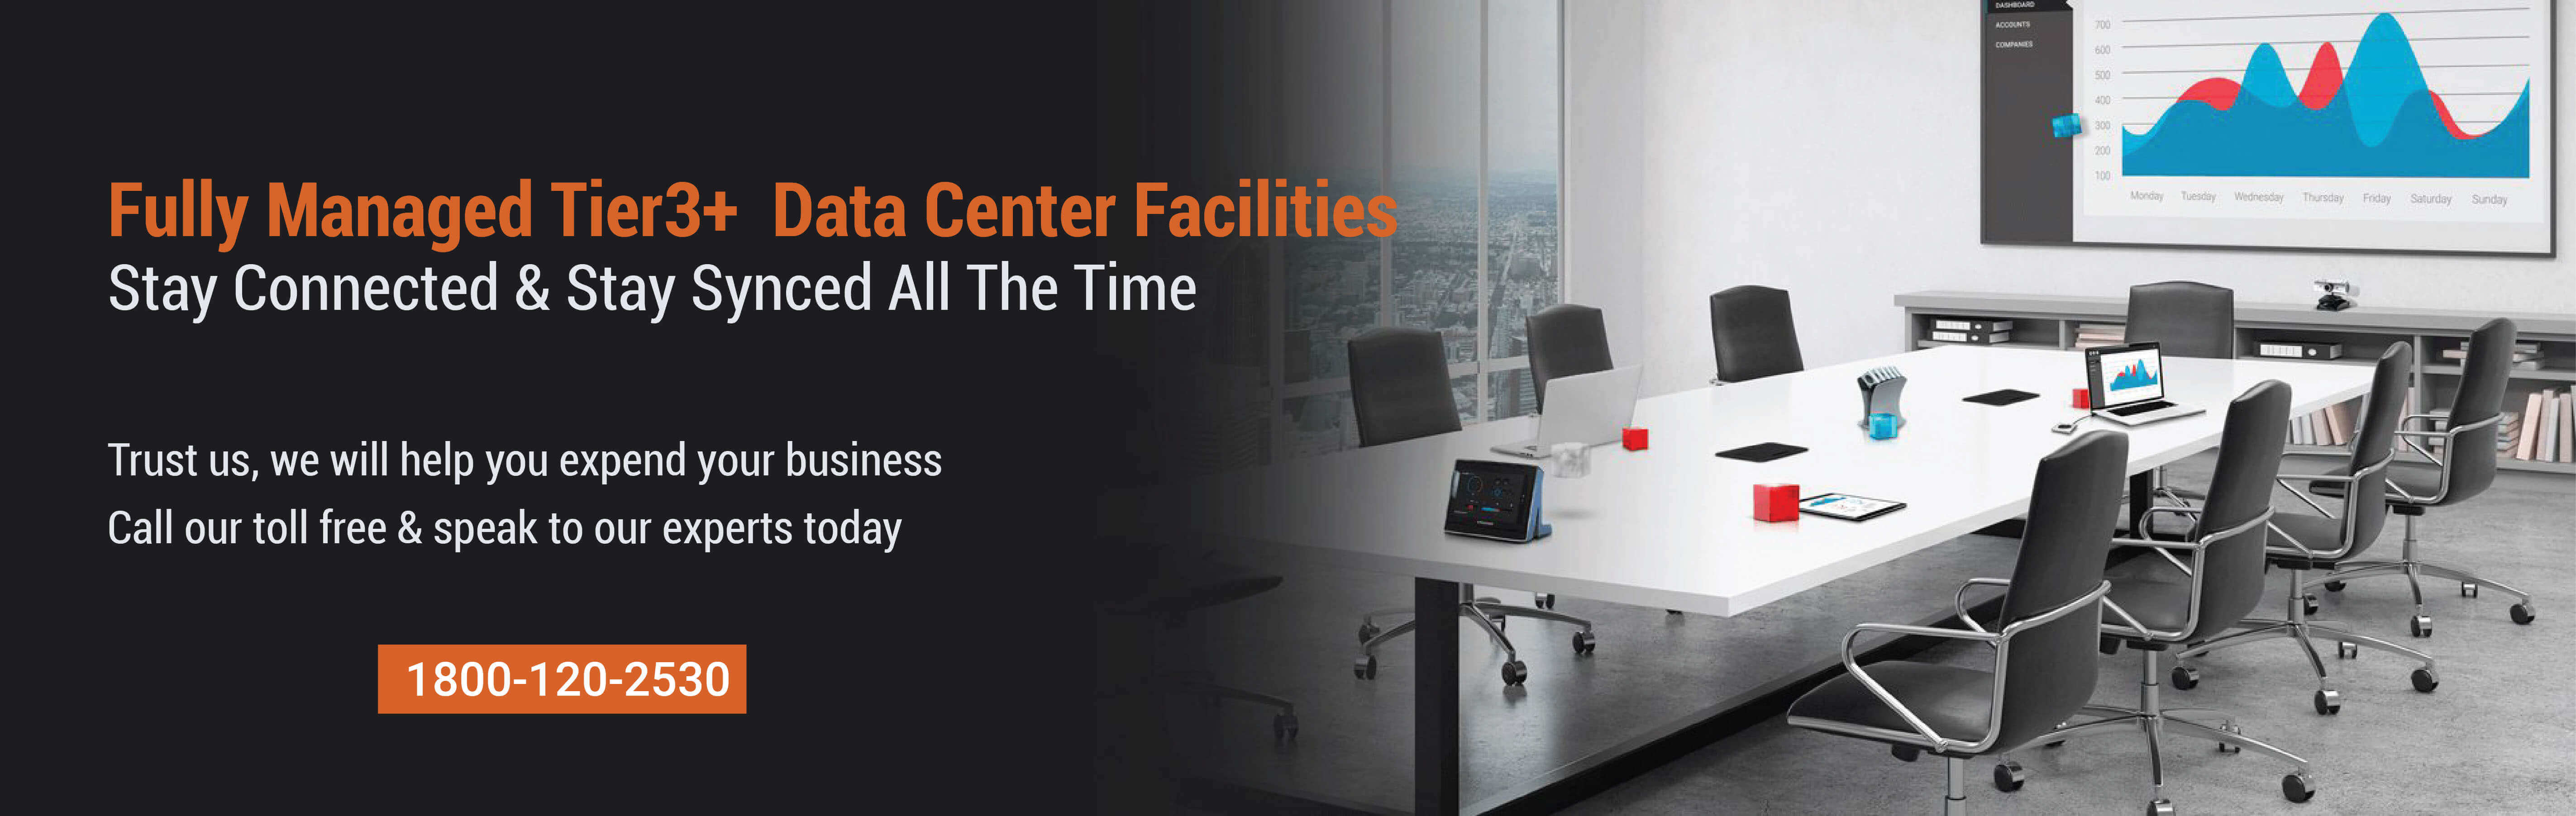 fully-managed-tier3+data-center